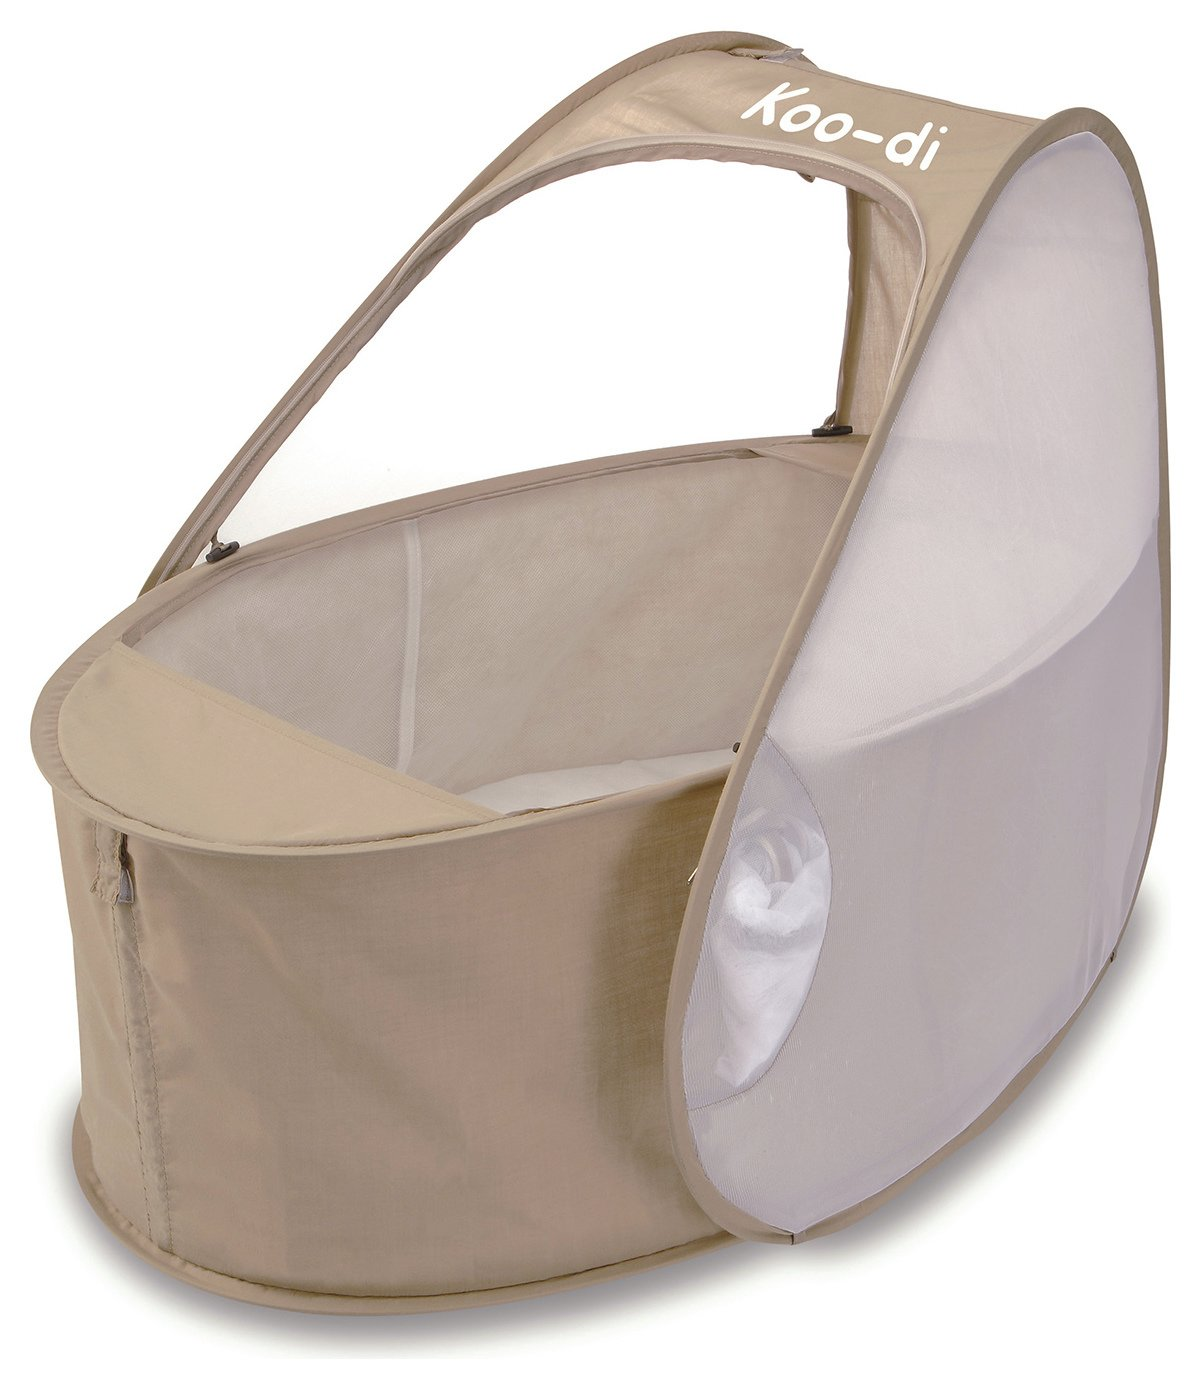 Image of Koo-di - Pop Up - Travel Bassinet - Caf? Cr?me